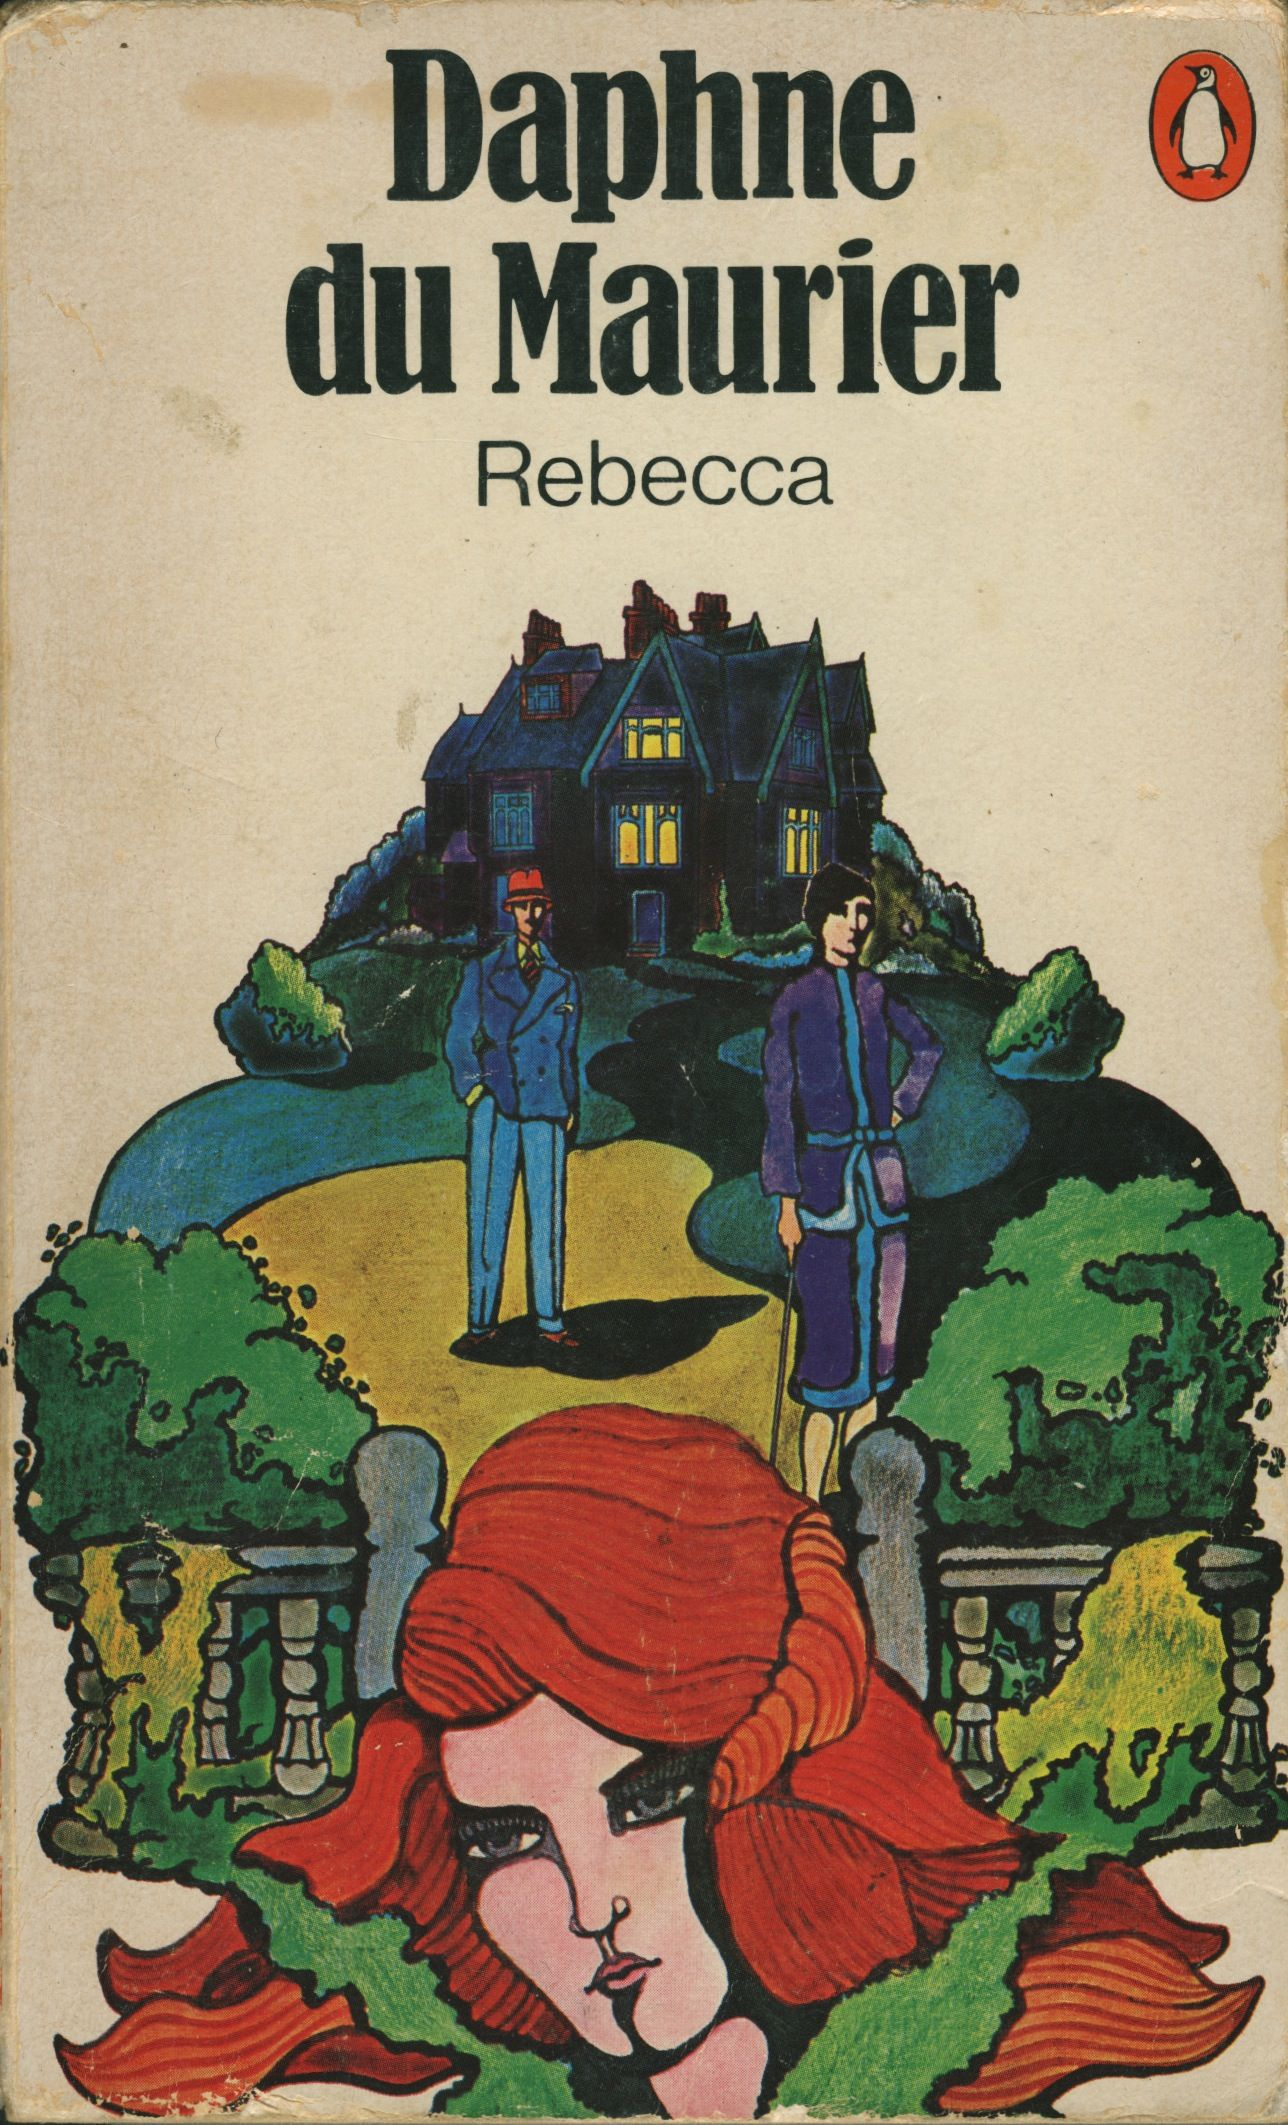 Penguin Book Cover Zone : Rebecca daphne du maurier thesis homeworkzoneedit fc